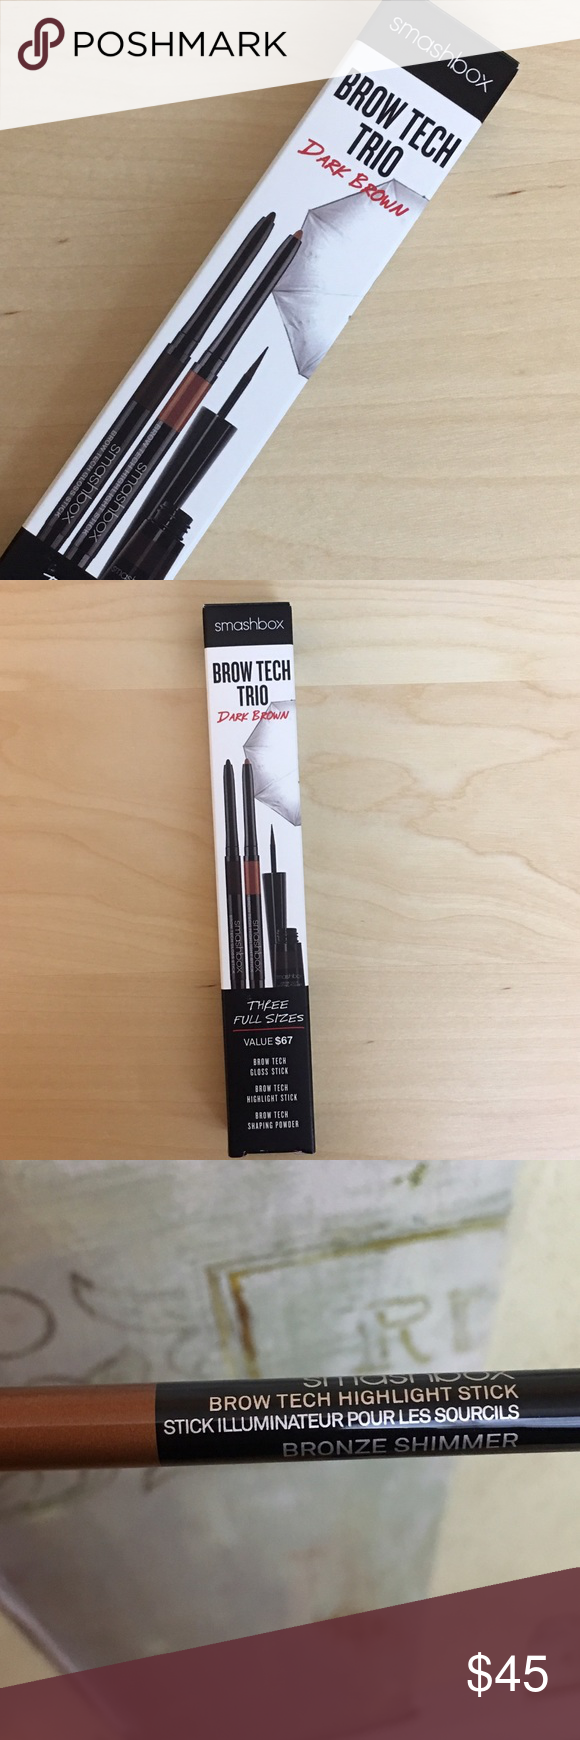 Smashbox Brow Trio Smash box dark brown eye brow trio kit